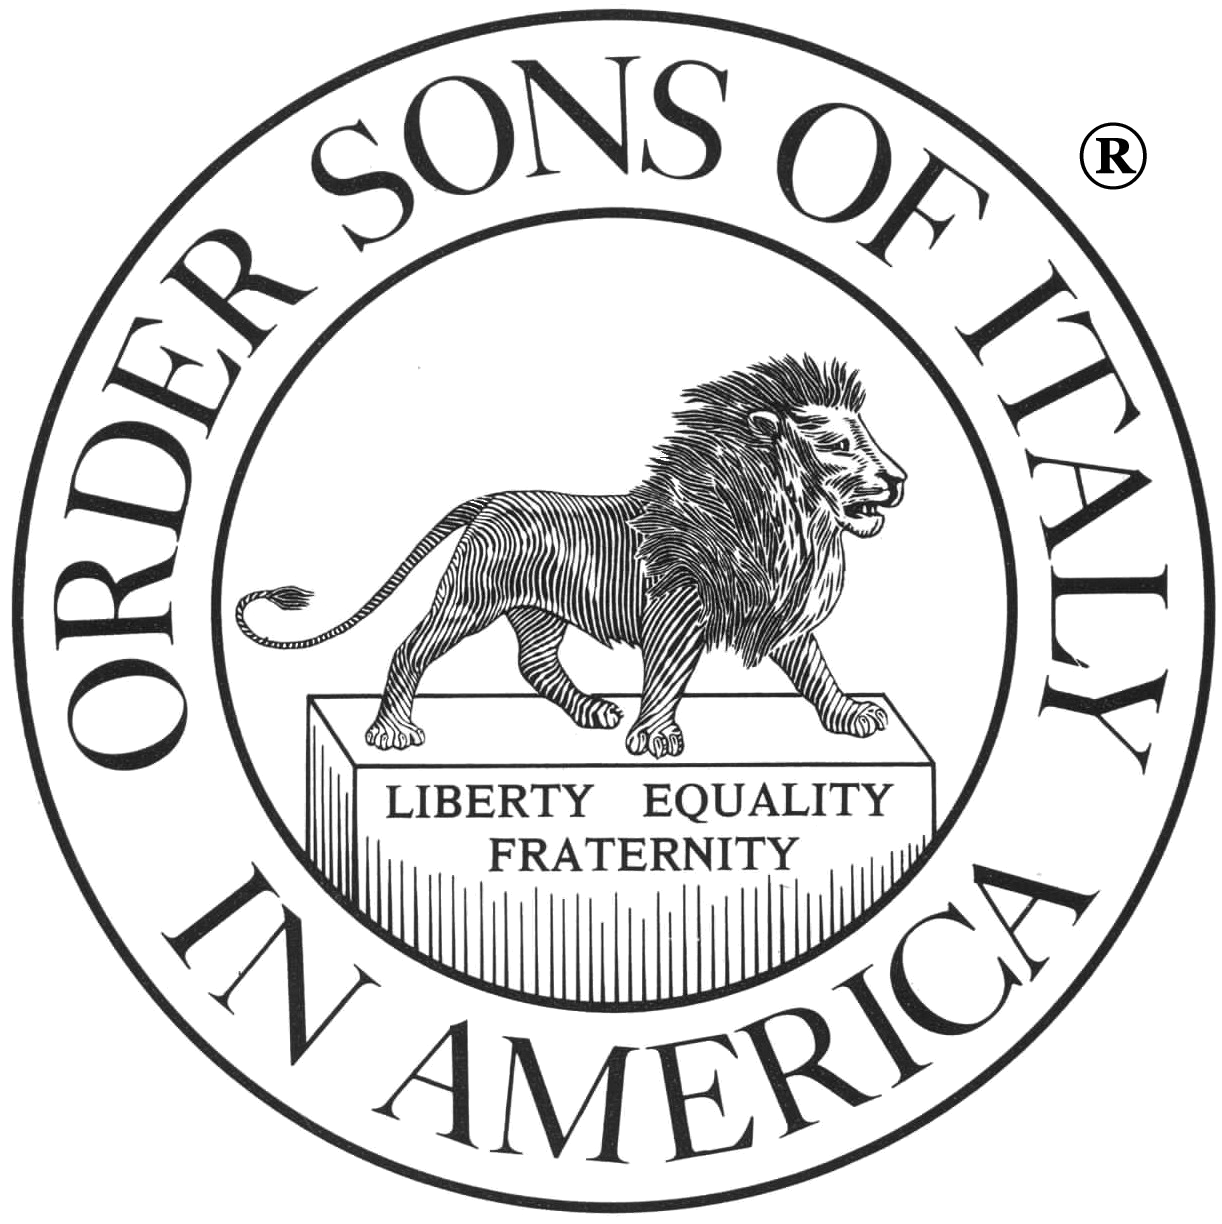 Orders Sons and Daughters of Italy in America